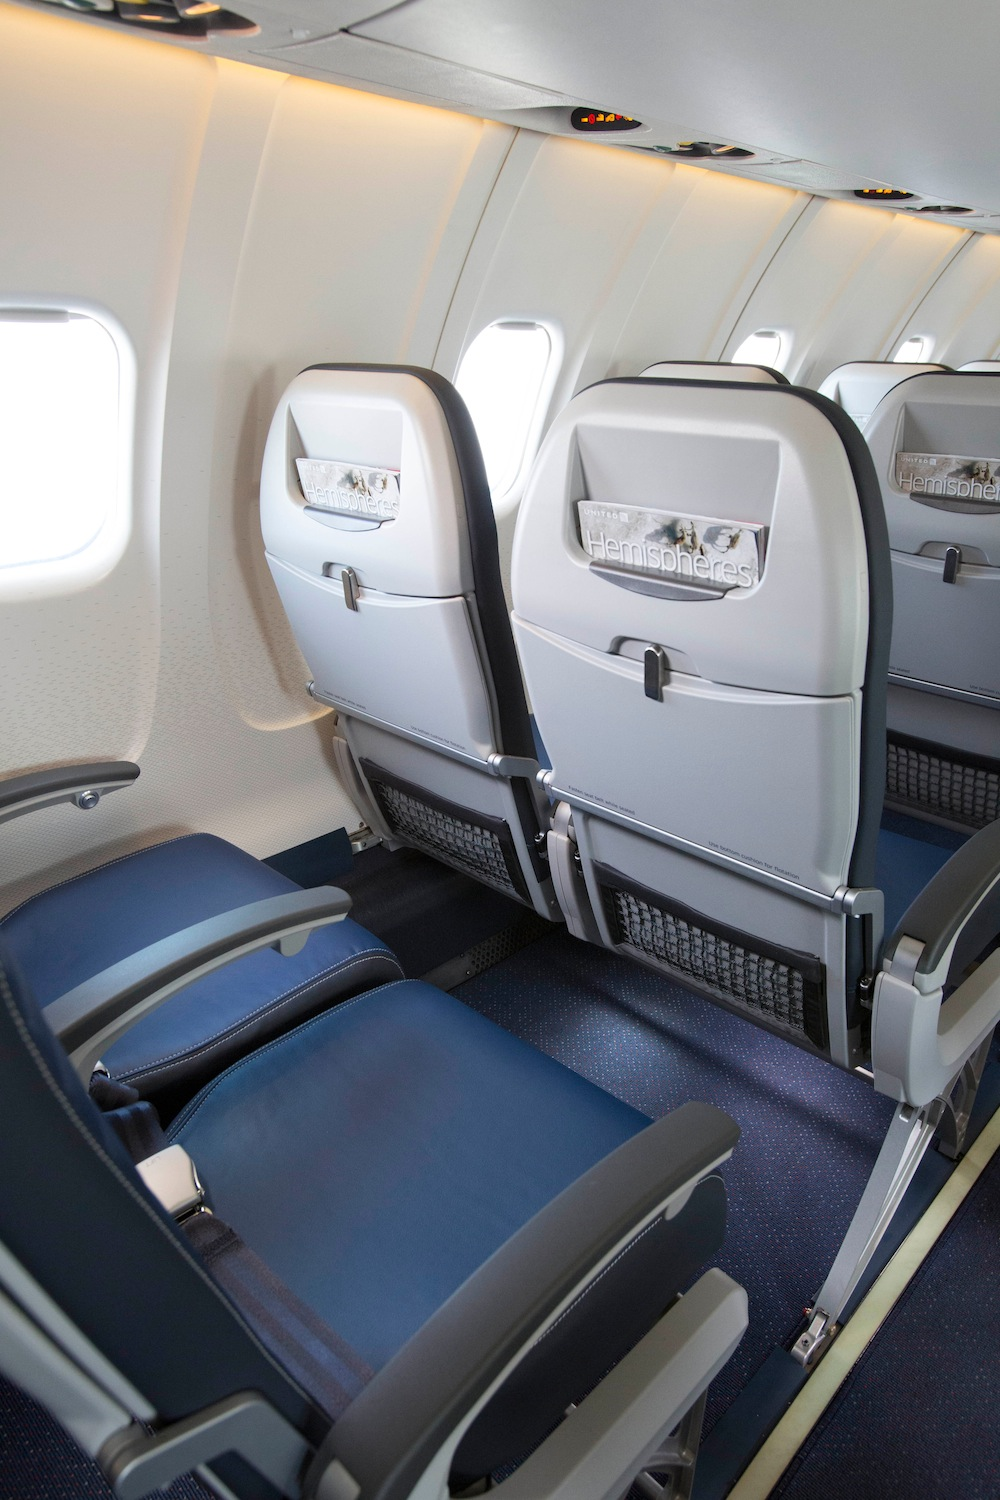 Small regional jets (like this refitted CRJ-700) have no middle seats and sometimes only one seat on one side of the aircraft. Image: AA